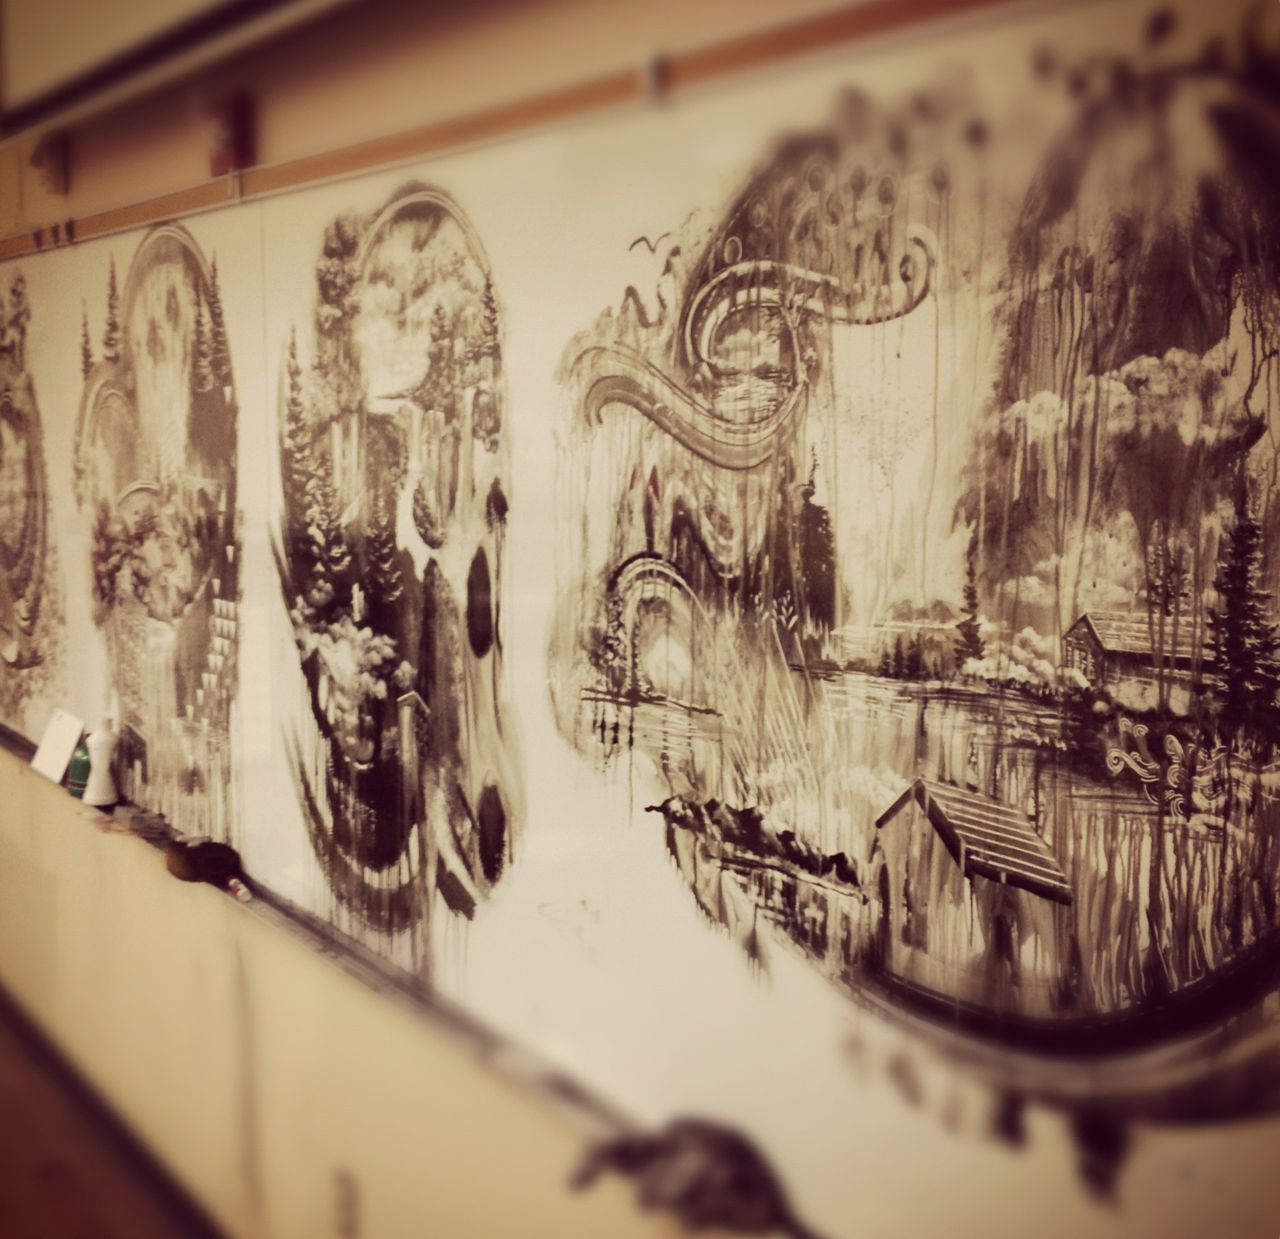 Euclide MN Classroom with Sumi ink paintings 2